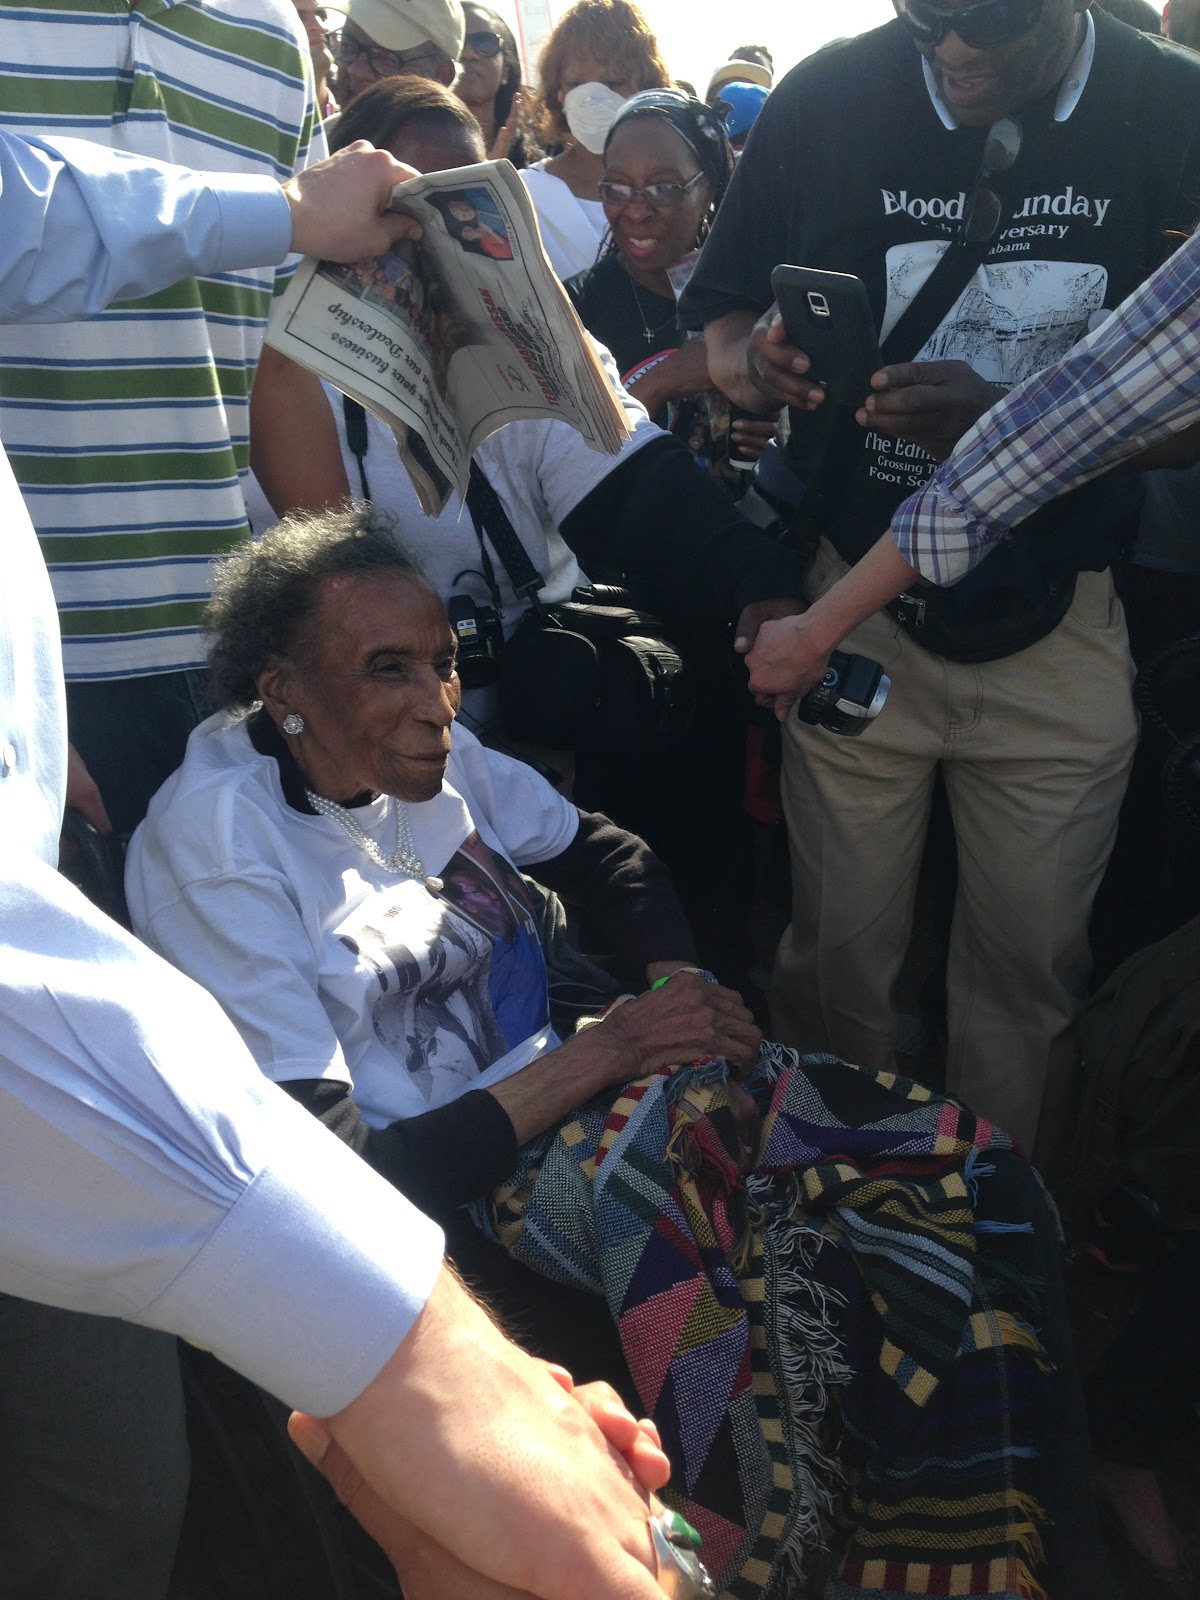 "Amelia Boynton, age 103, is wheeled across the Edmund Pettus bridge during Sunday's commemoration of Bloody Sunday. 50 years ago, she was thrown down and beaten by Alabama state troopers and Selma police. Kirsten West Savali writes of her saying, "" we better climb down from the shoulders of history and get to [the work of today]."" -http://www.theroot.com/</em><em>articles/history/2015/03/"